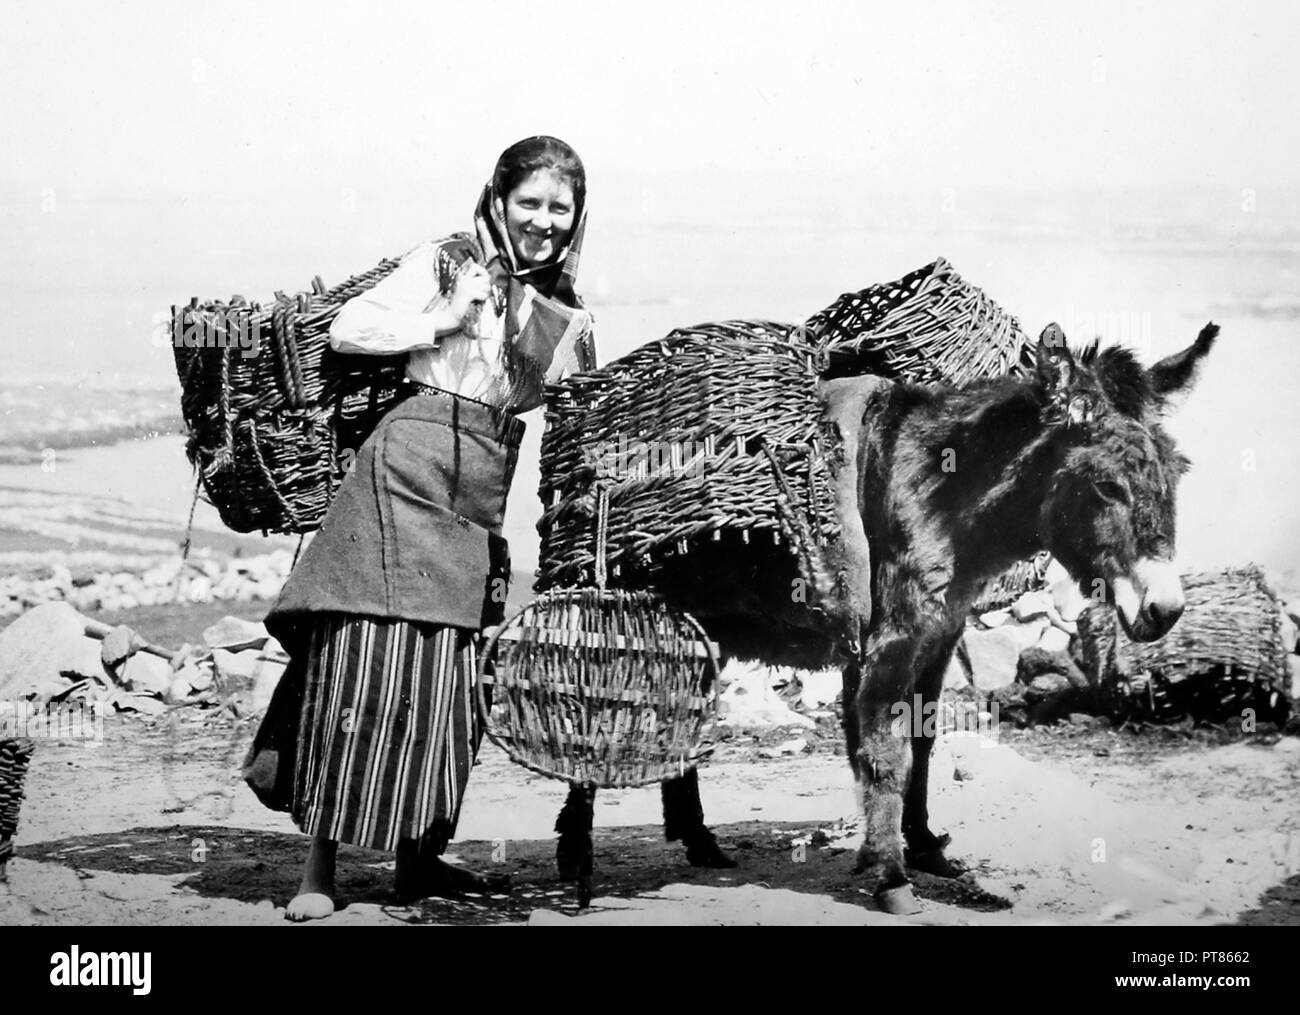 Carrying turf, Arranmore Island, West of Ireland, early 1900s - Stock Image